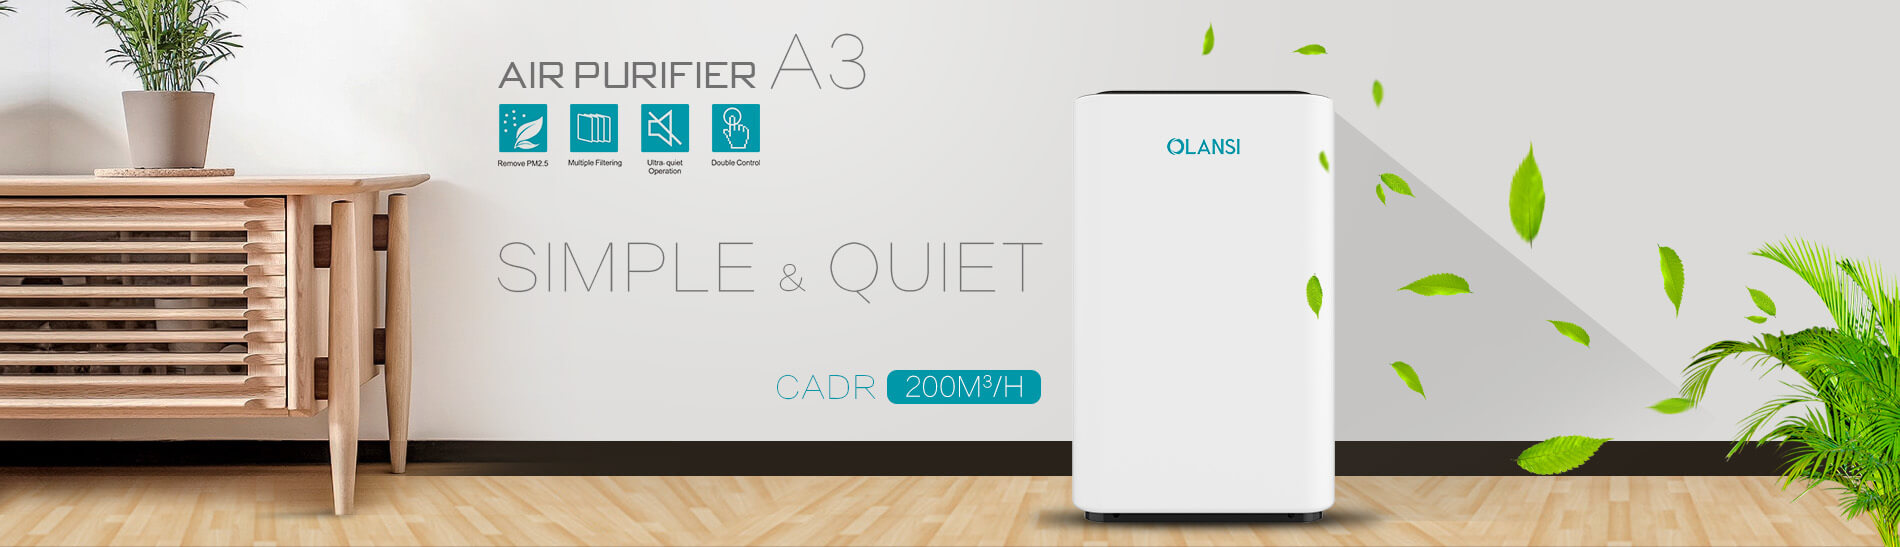 Olansi Healthcare Co., Ltd Presents a Wide Range Of Home Air Purifiers To Prevent Covid-19 Viruses Spreading